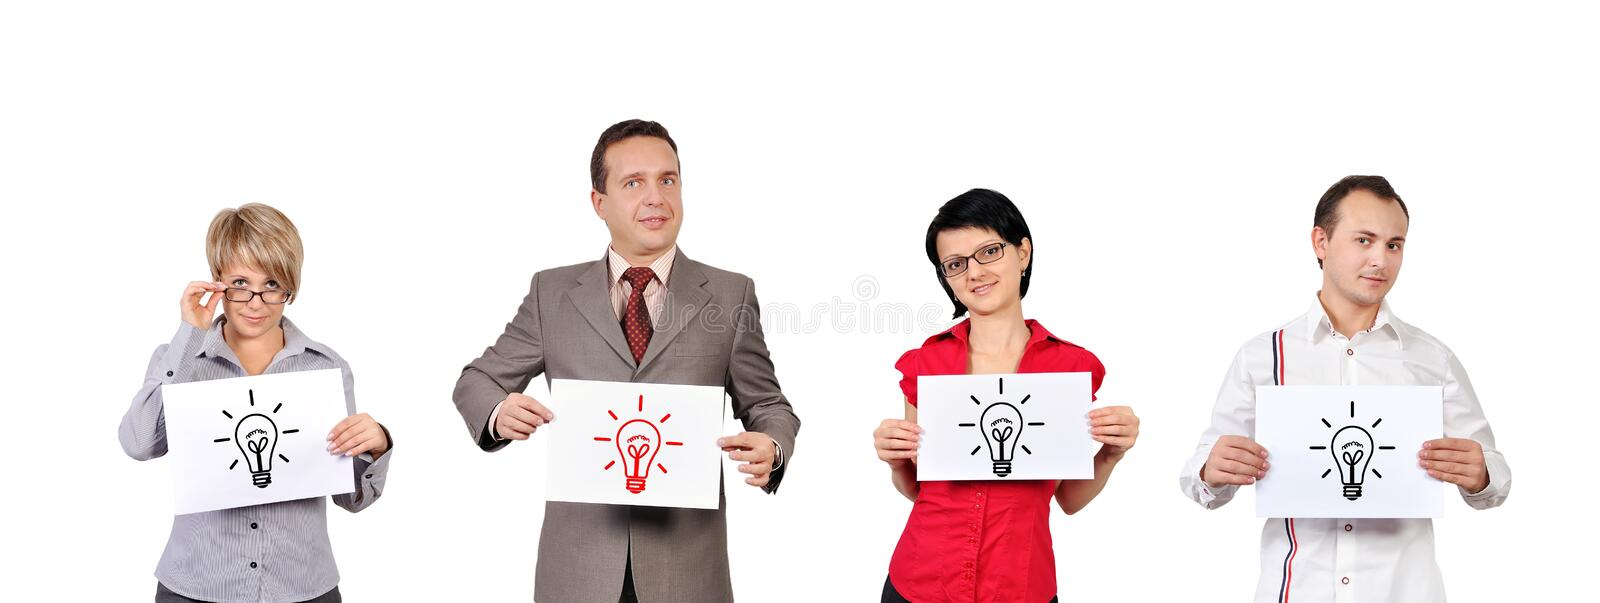 Download Idea Concept Royalty Free Stock Photo - Image: 27463265